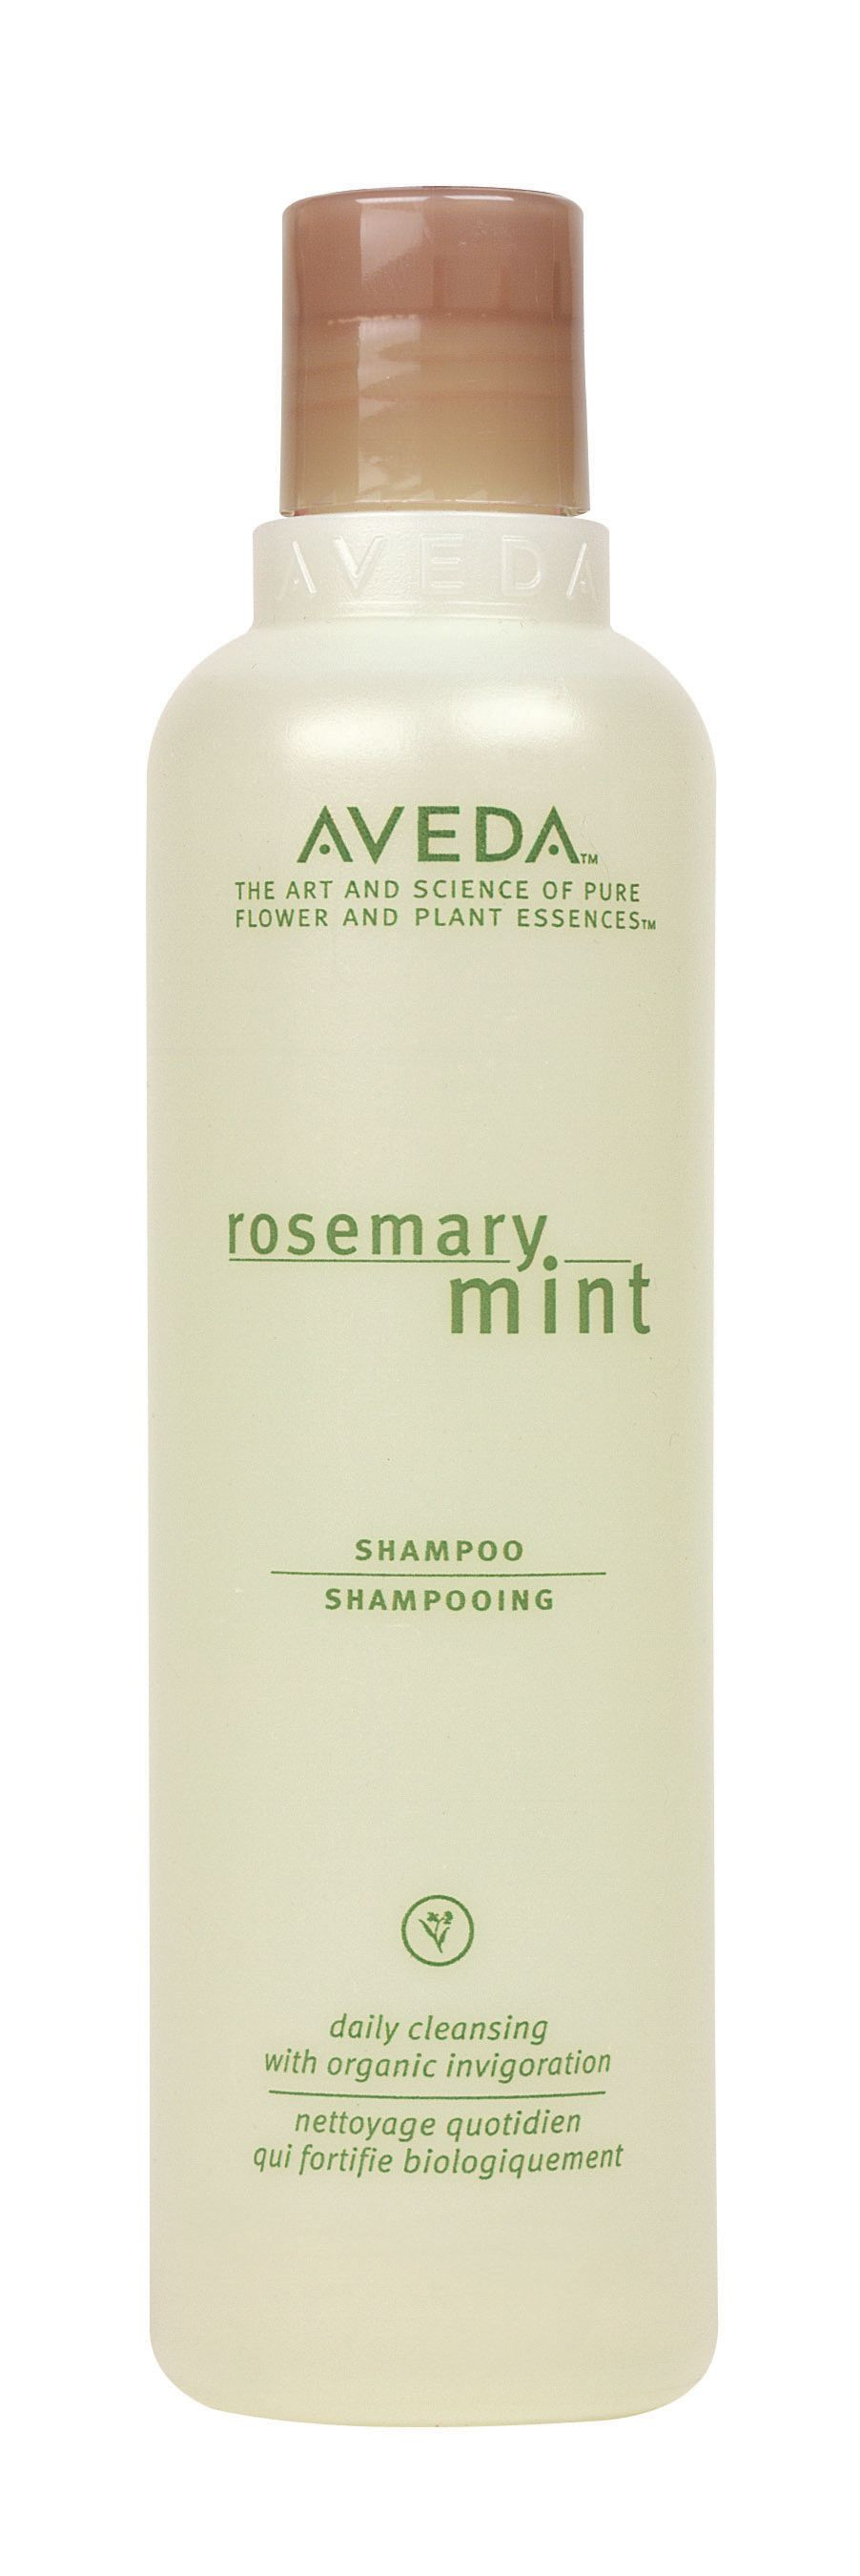 Rosemary Mint Shampoo 250ml